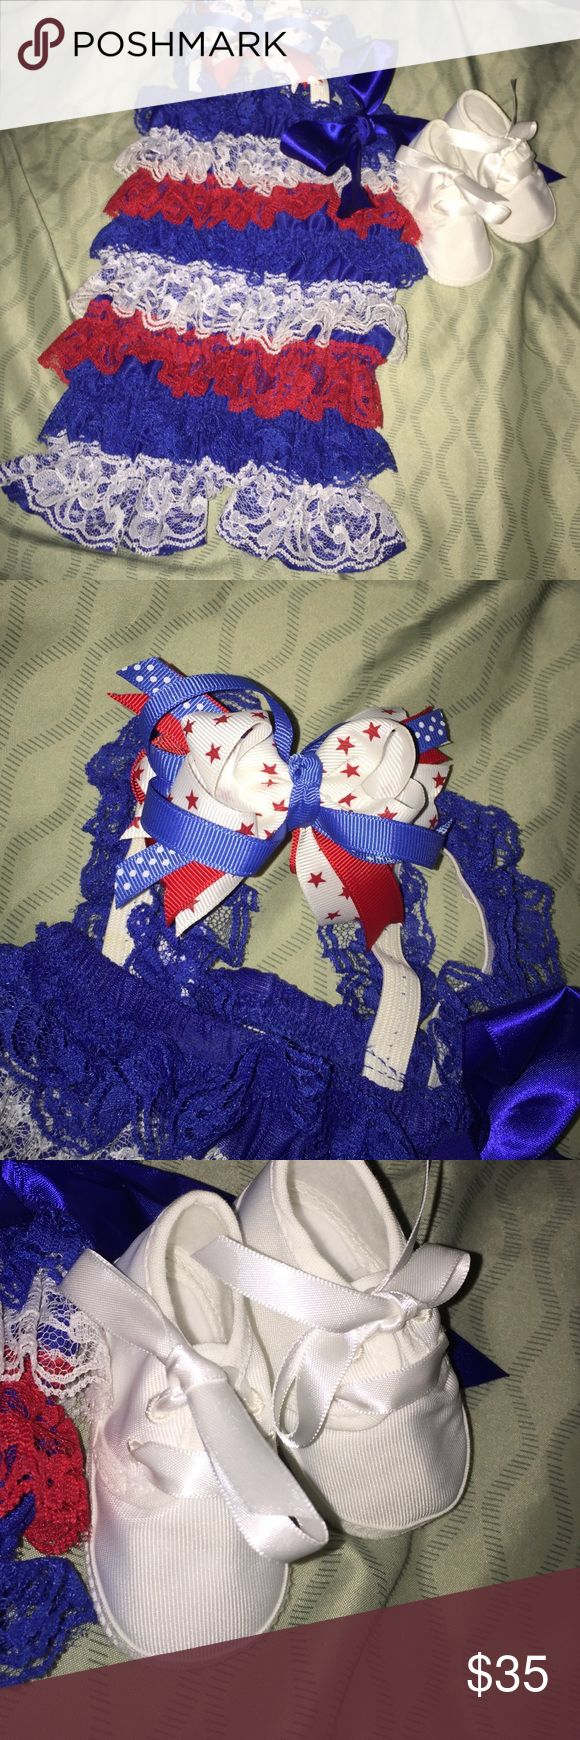 Newborn patriotic outfit Newborn patriotic outfit comes with lace romper, bow and white shoes Other